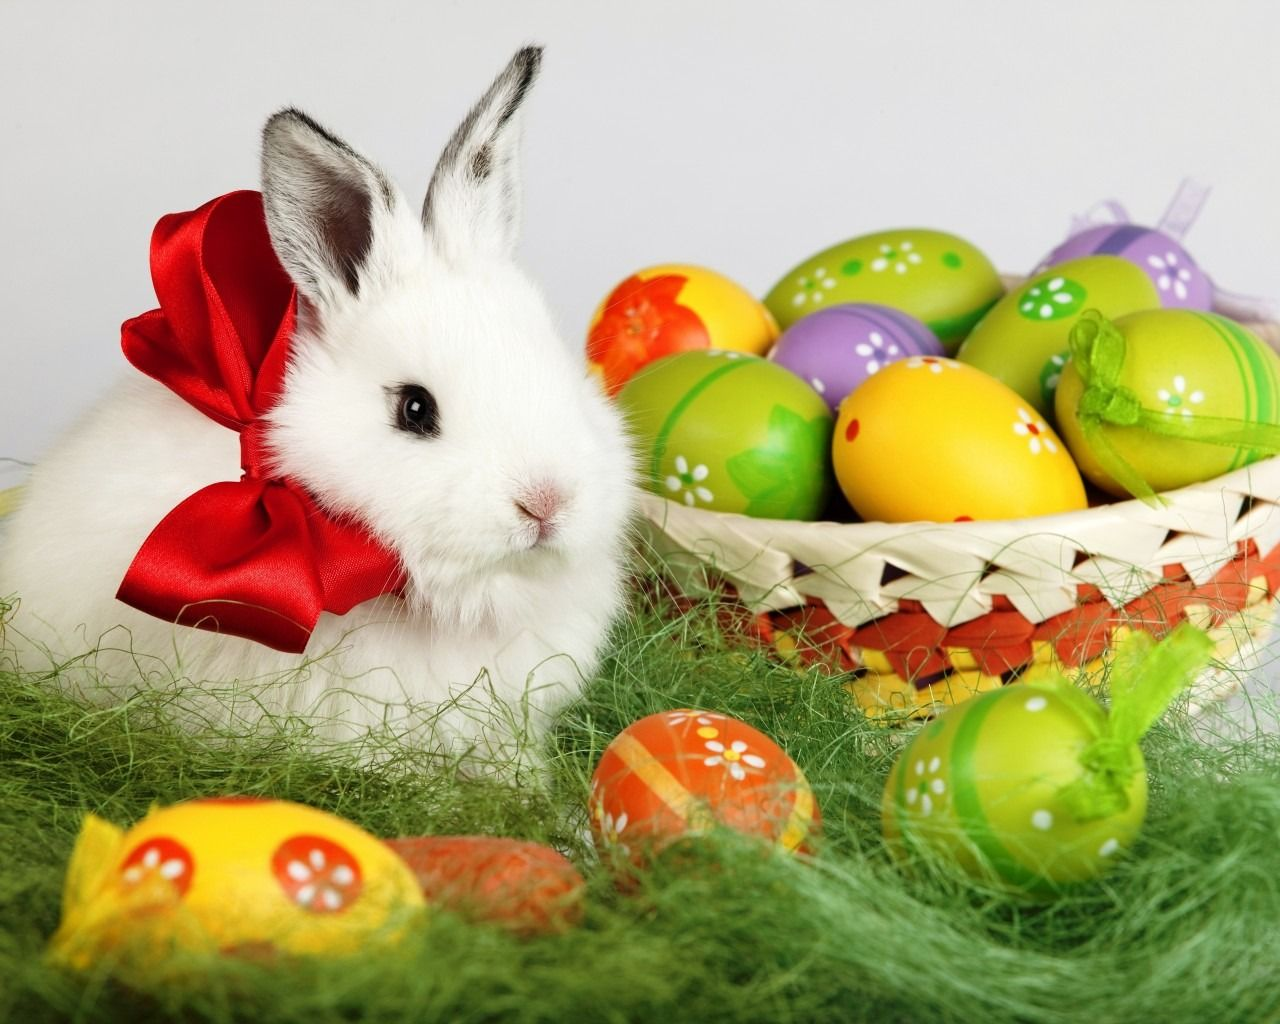 Cute Easter Bunny Wallpaper Happy Easter Wallpaper Easter Bunny Images Easter Wallpaper